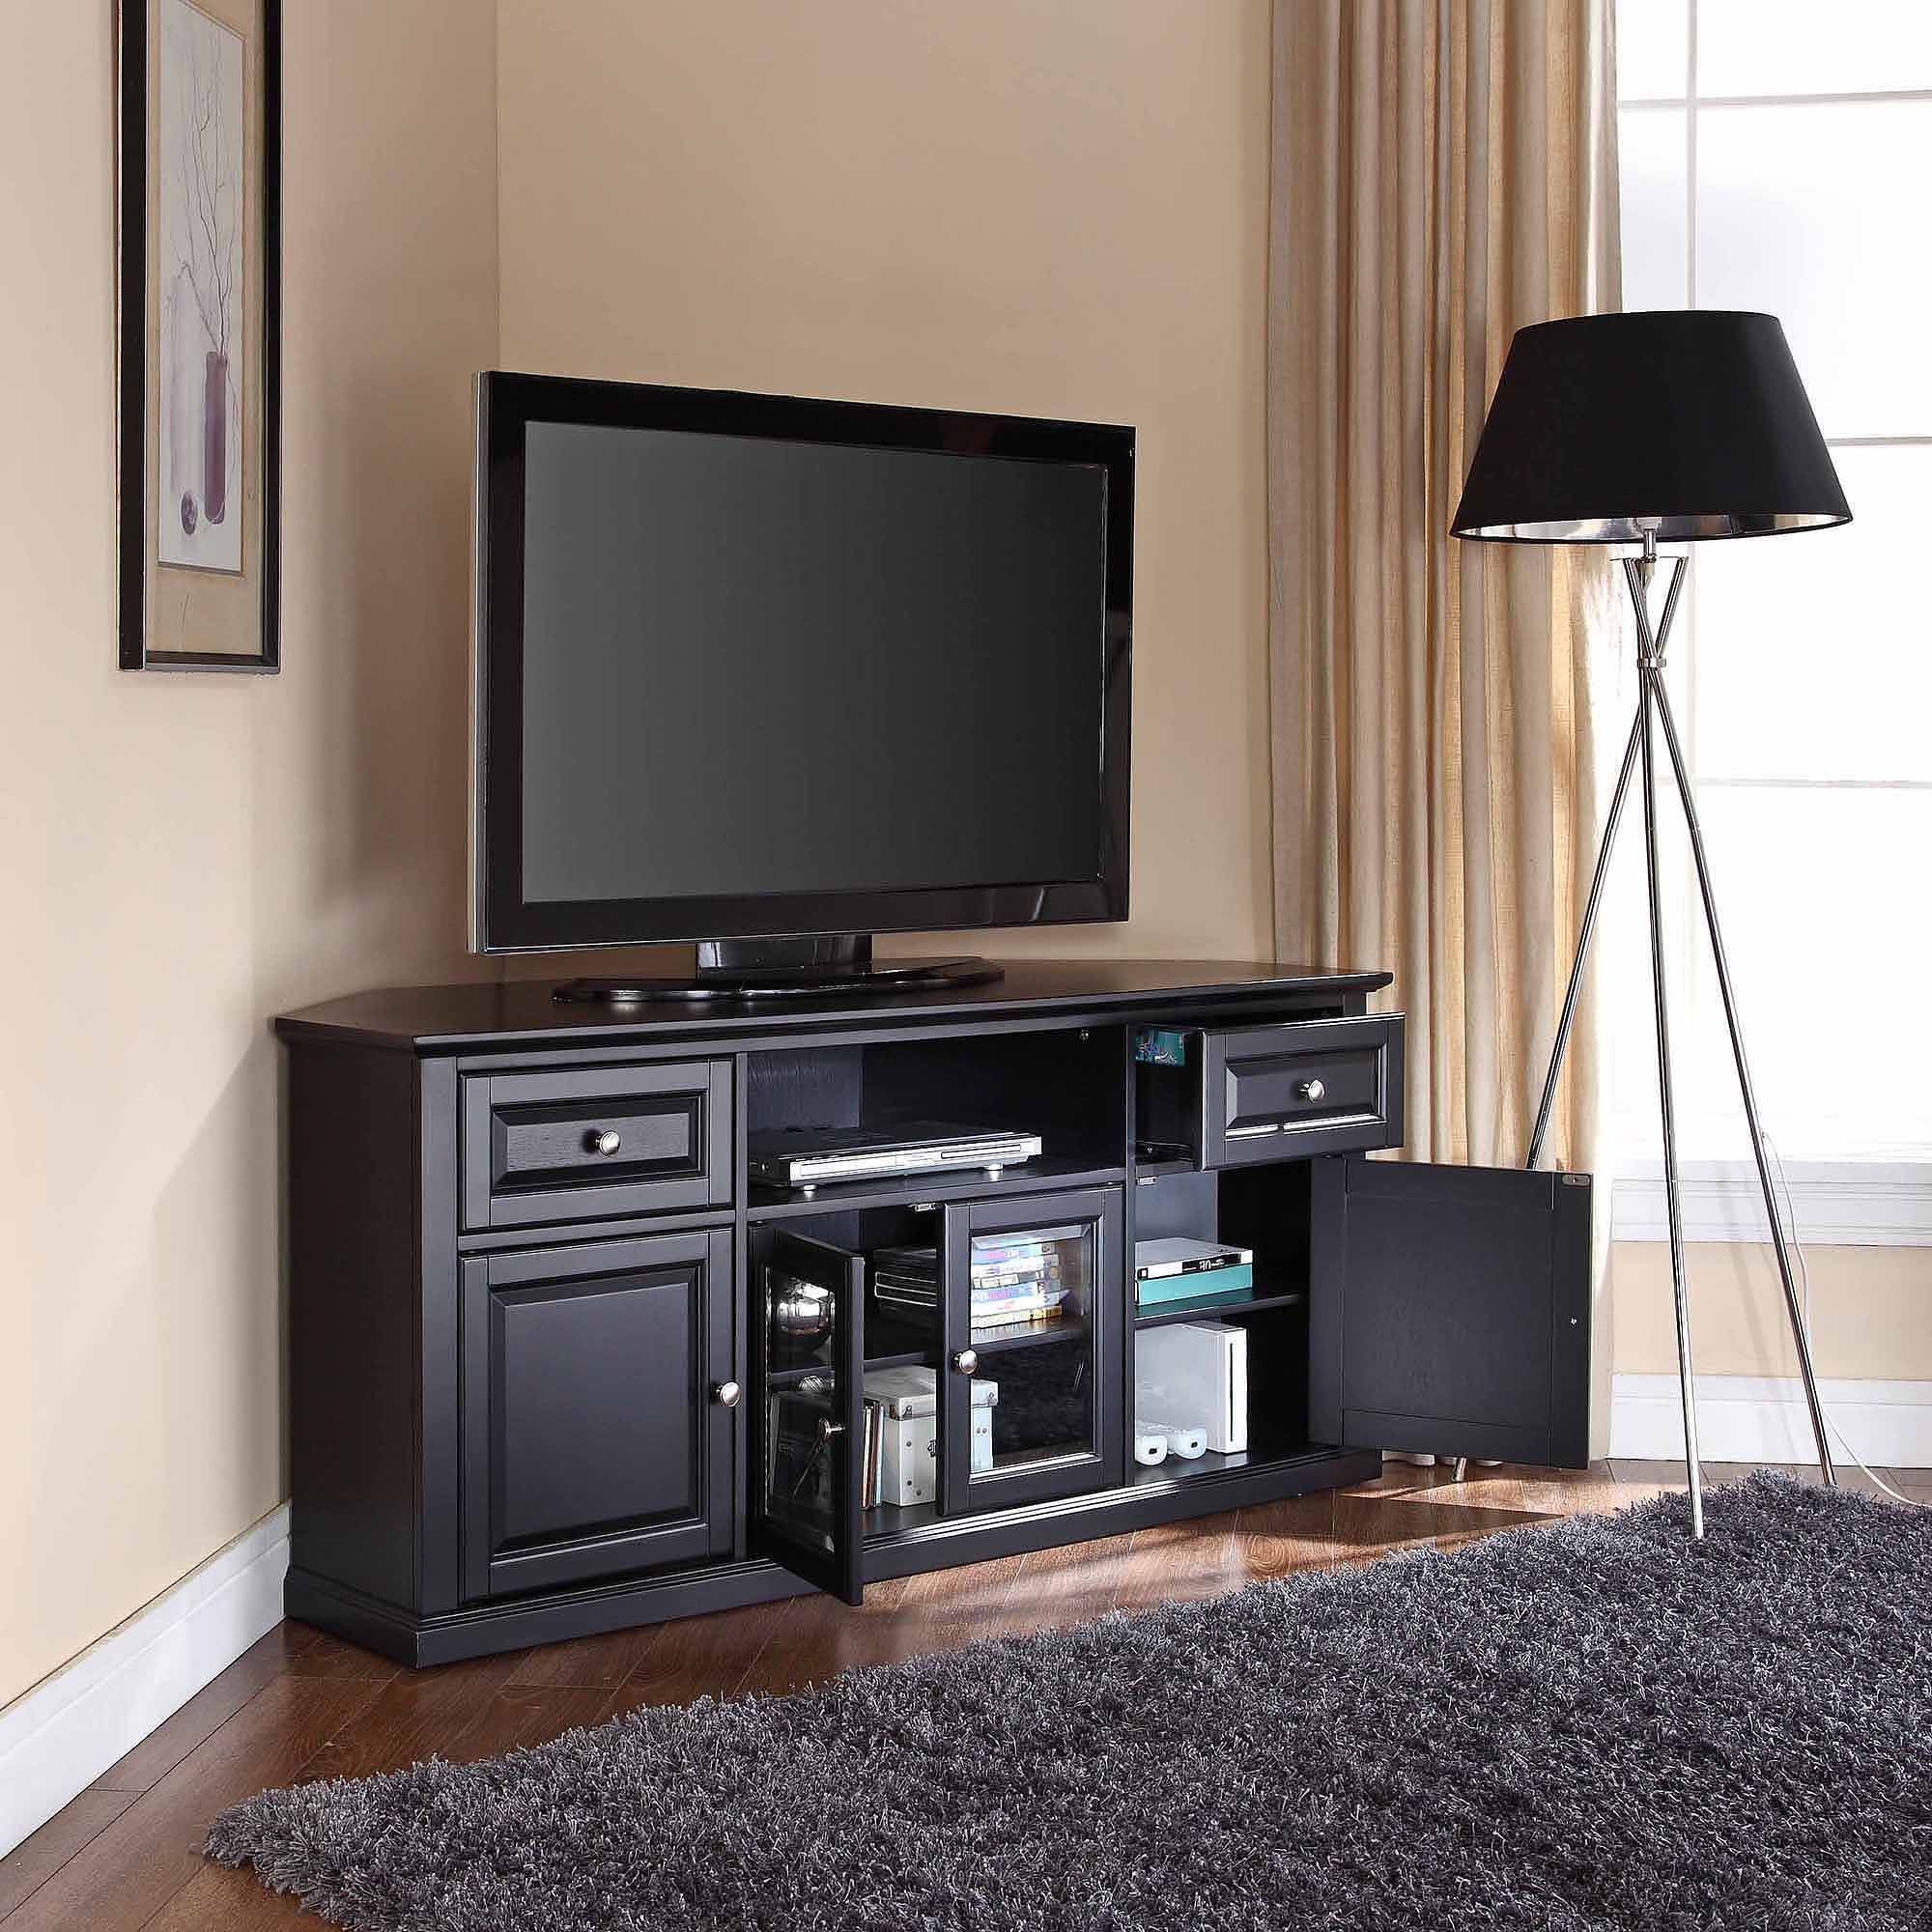 55 Inch Corner Tv Stands With Regard To 2018 65 Inch Tv Stand Walmart 55 Stands Sears Costco 199 60 Corner (View 7 of 20)